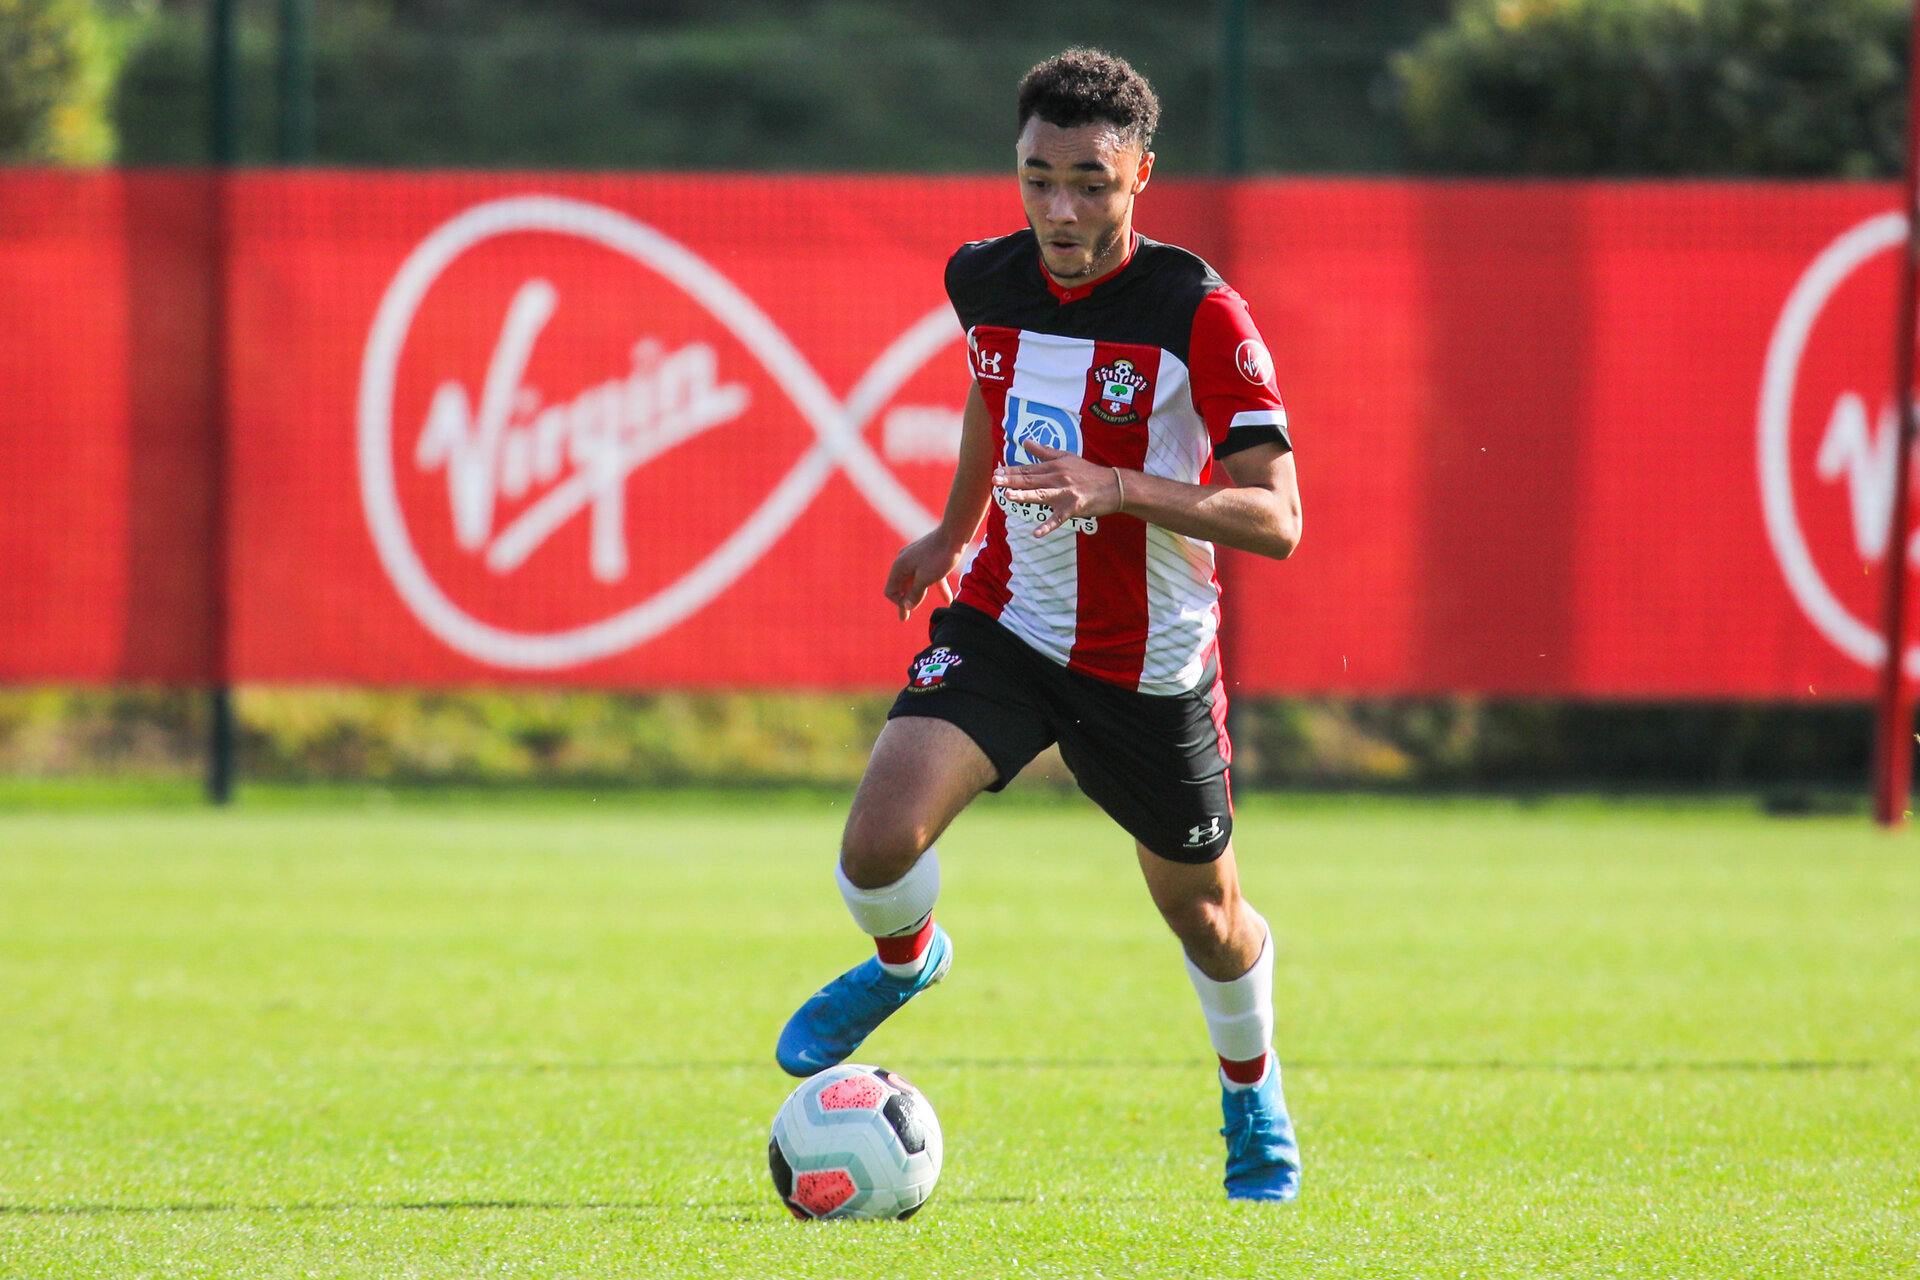 SOUTHAMPTON, ENGLAND - OCTOBER 19: Jayden Smith of Southampton FC during the Barclays Under 18 Premier League match between Southampton FC and Leicester City at the Staplewood Campus on October 19, 2019 in Southampton, England